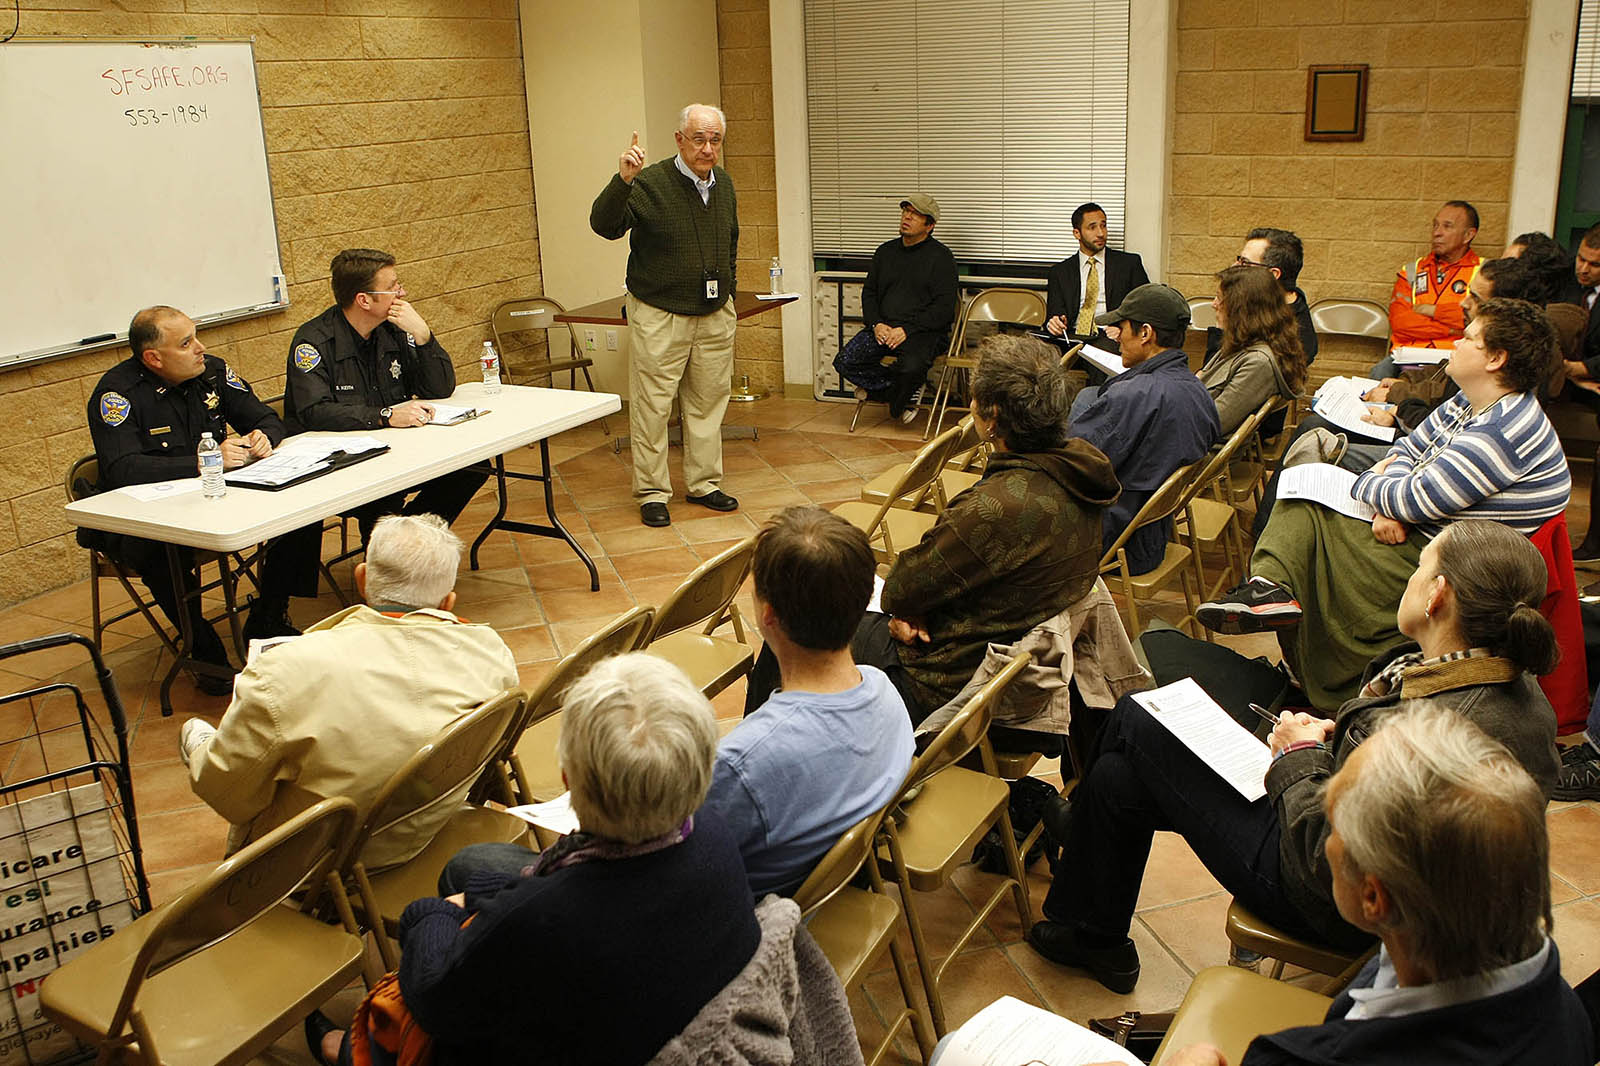 Public Safety Coordinator Jon Shepherd gives the crowd basic safety tips during Tuesday's public police forum.